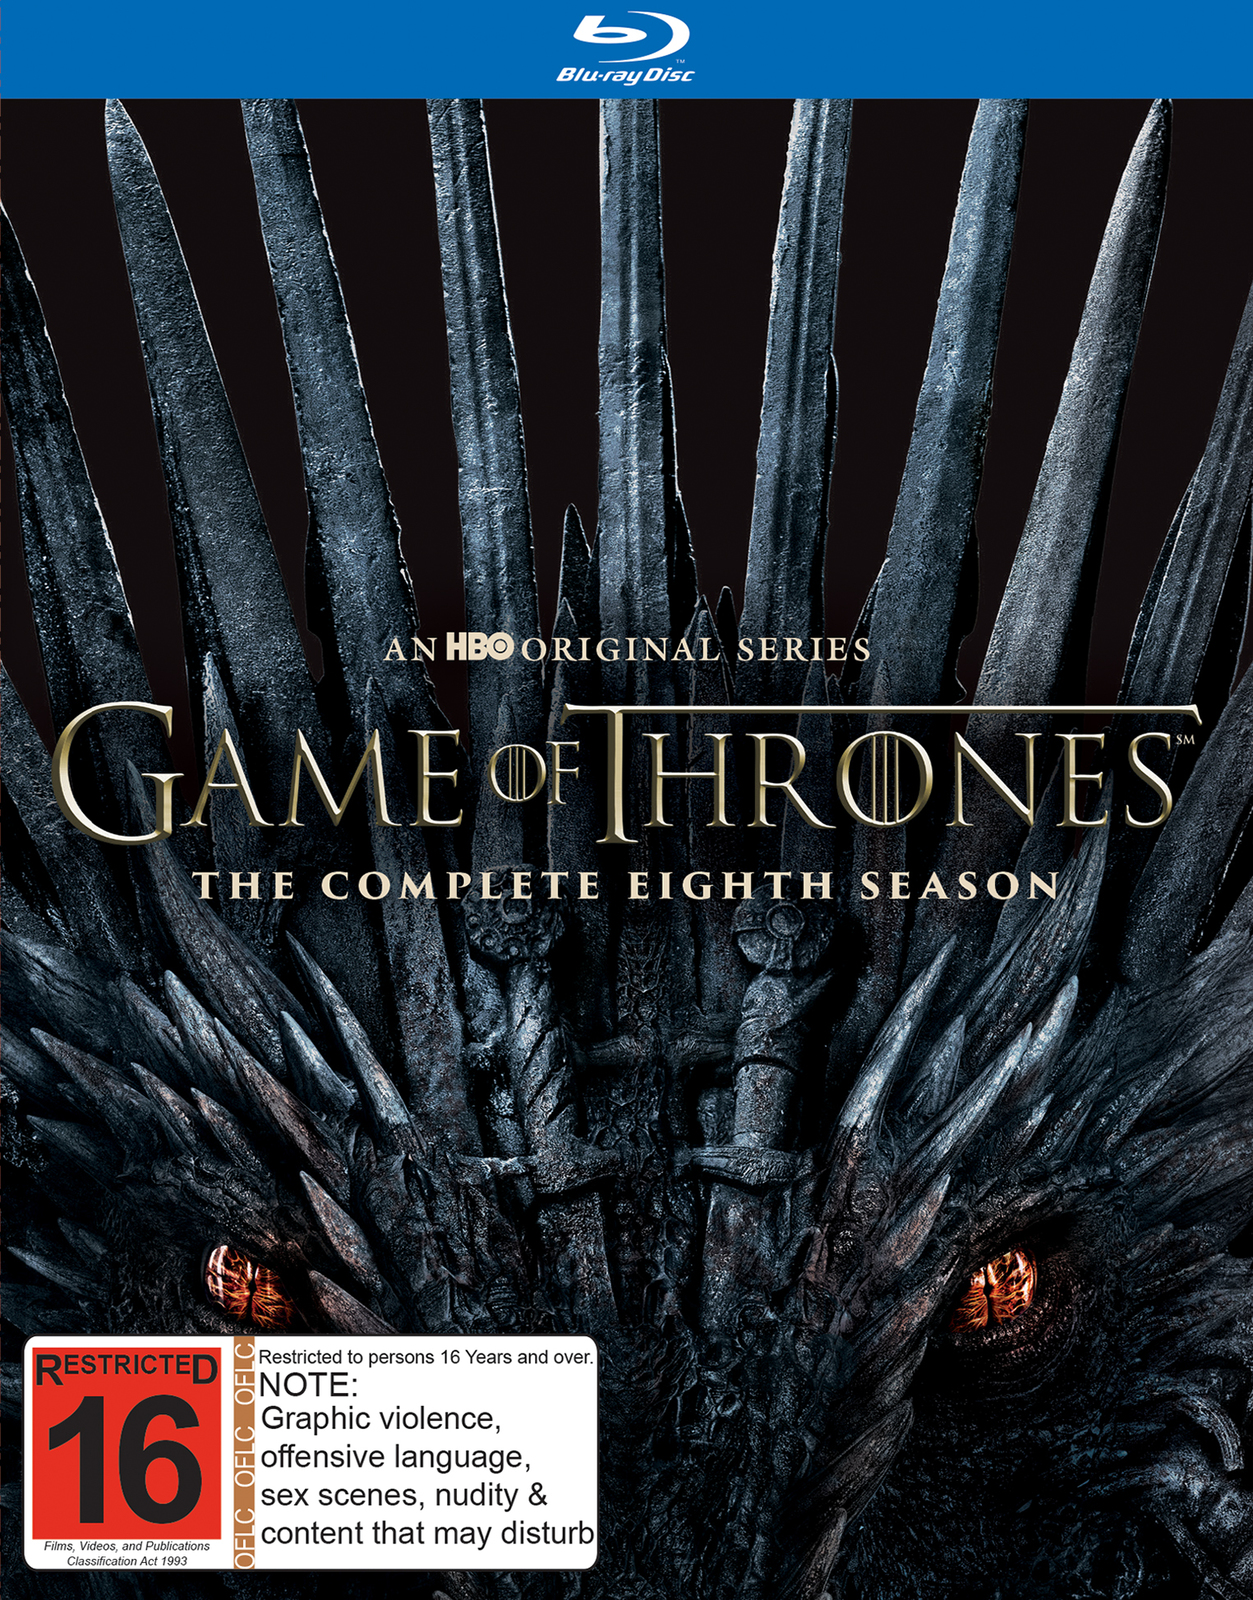 Game of Thrones Season 8 on Blu-ray image